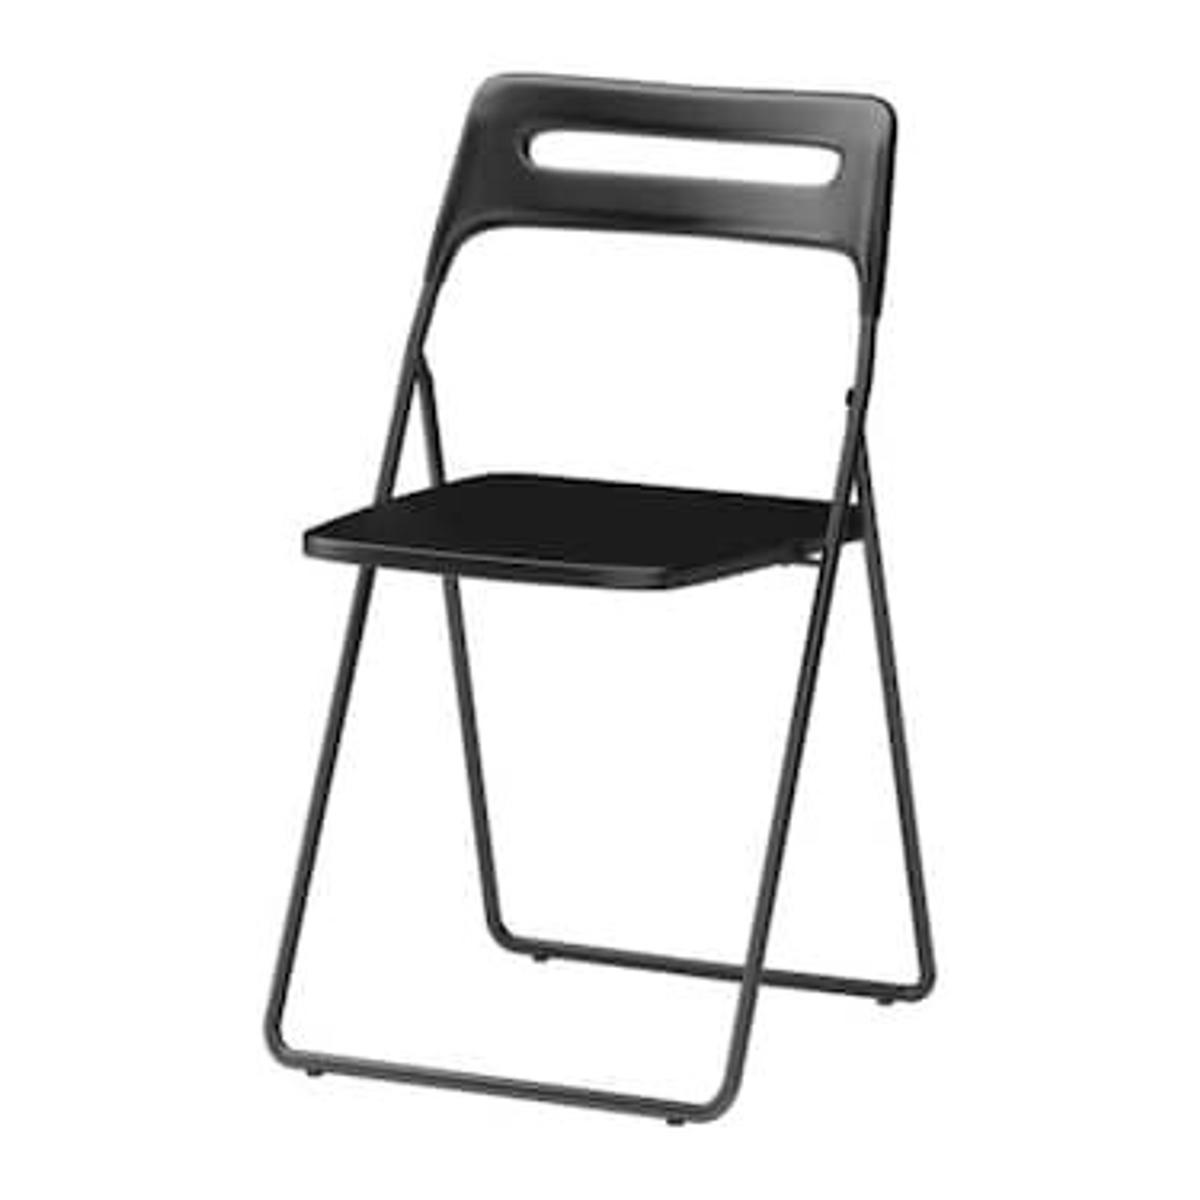 Two Black Folding Chairs From Ikea Nisse